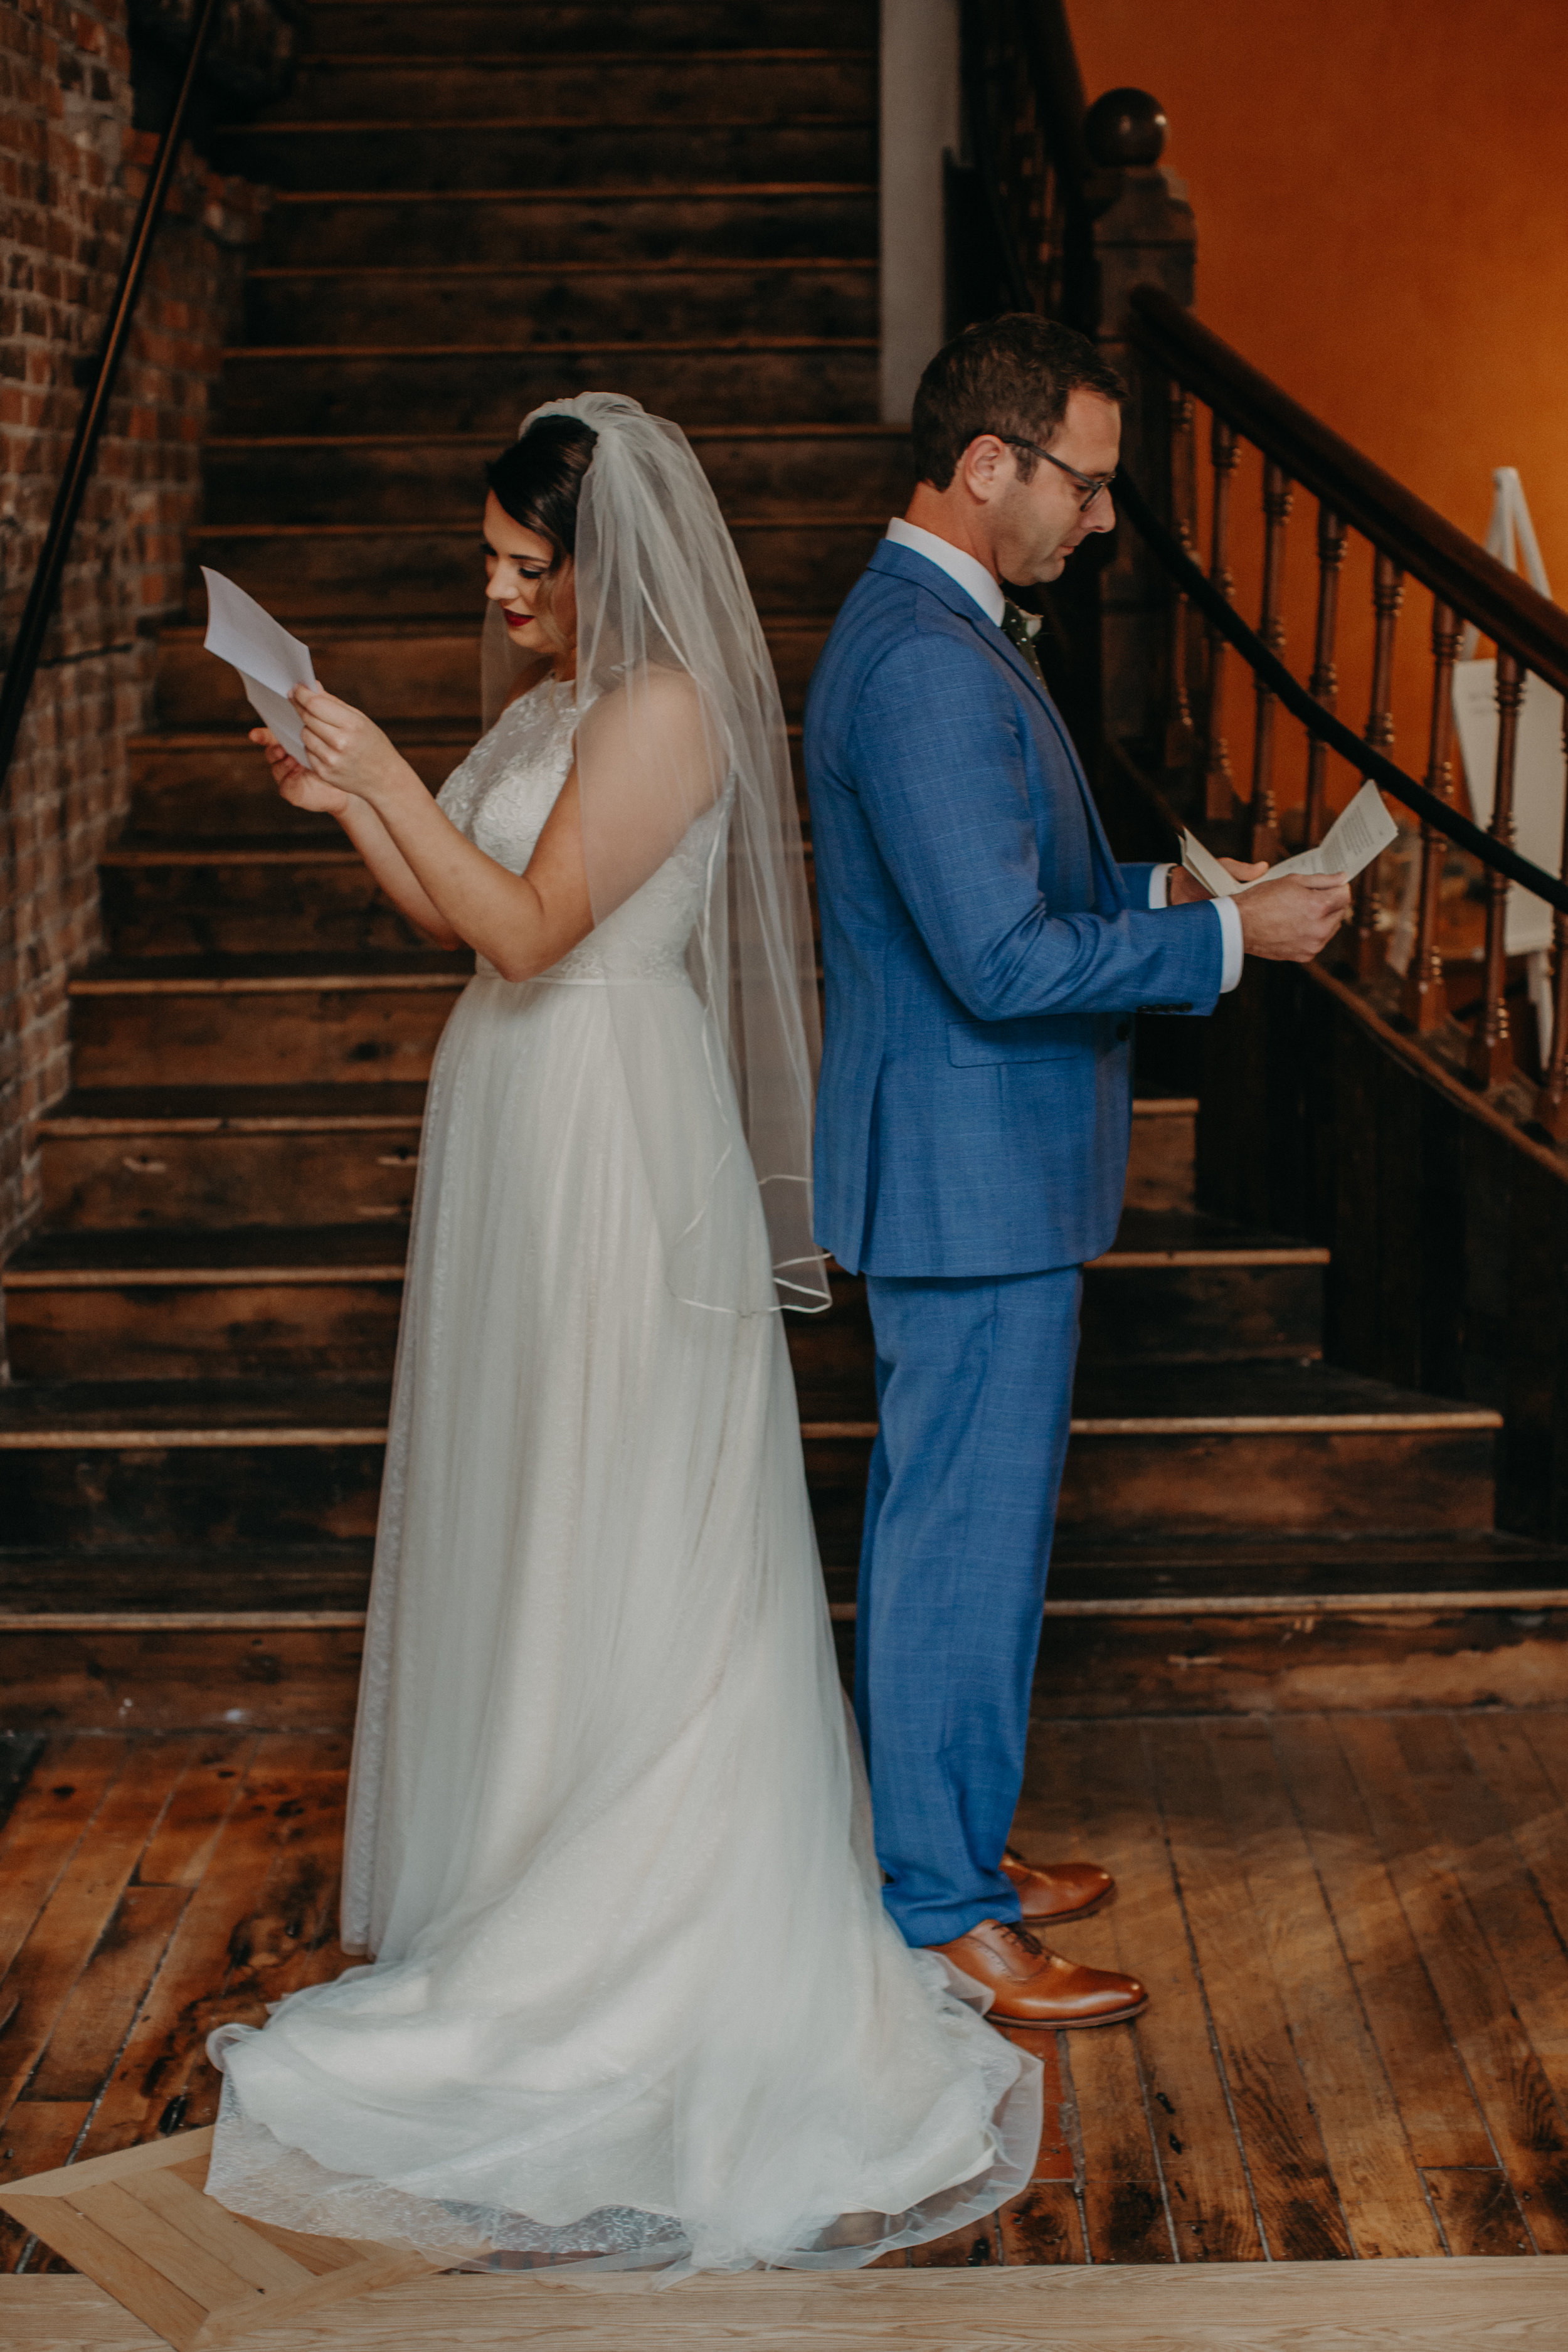 a Stillwater Mn bride and groom read intimate letters before their first look at The Loft at Studio J